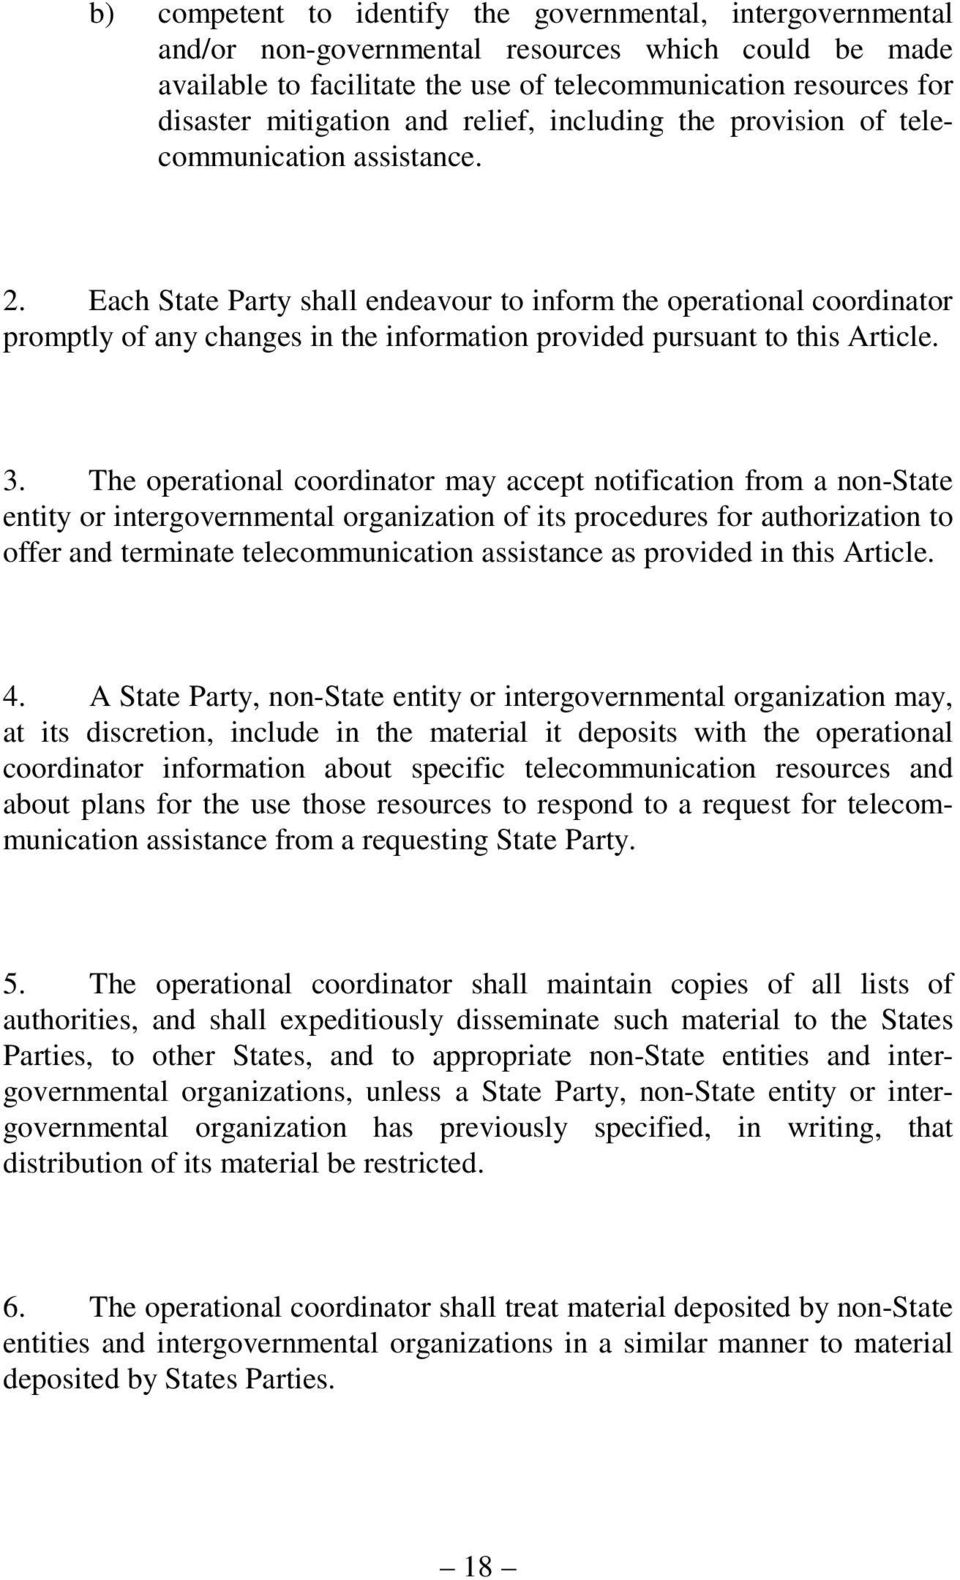 Each State Party shall endeavour to inform the operational coordinator promptly of any changes in the information provided pursuant to this Article. 3.